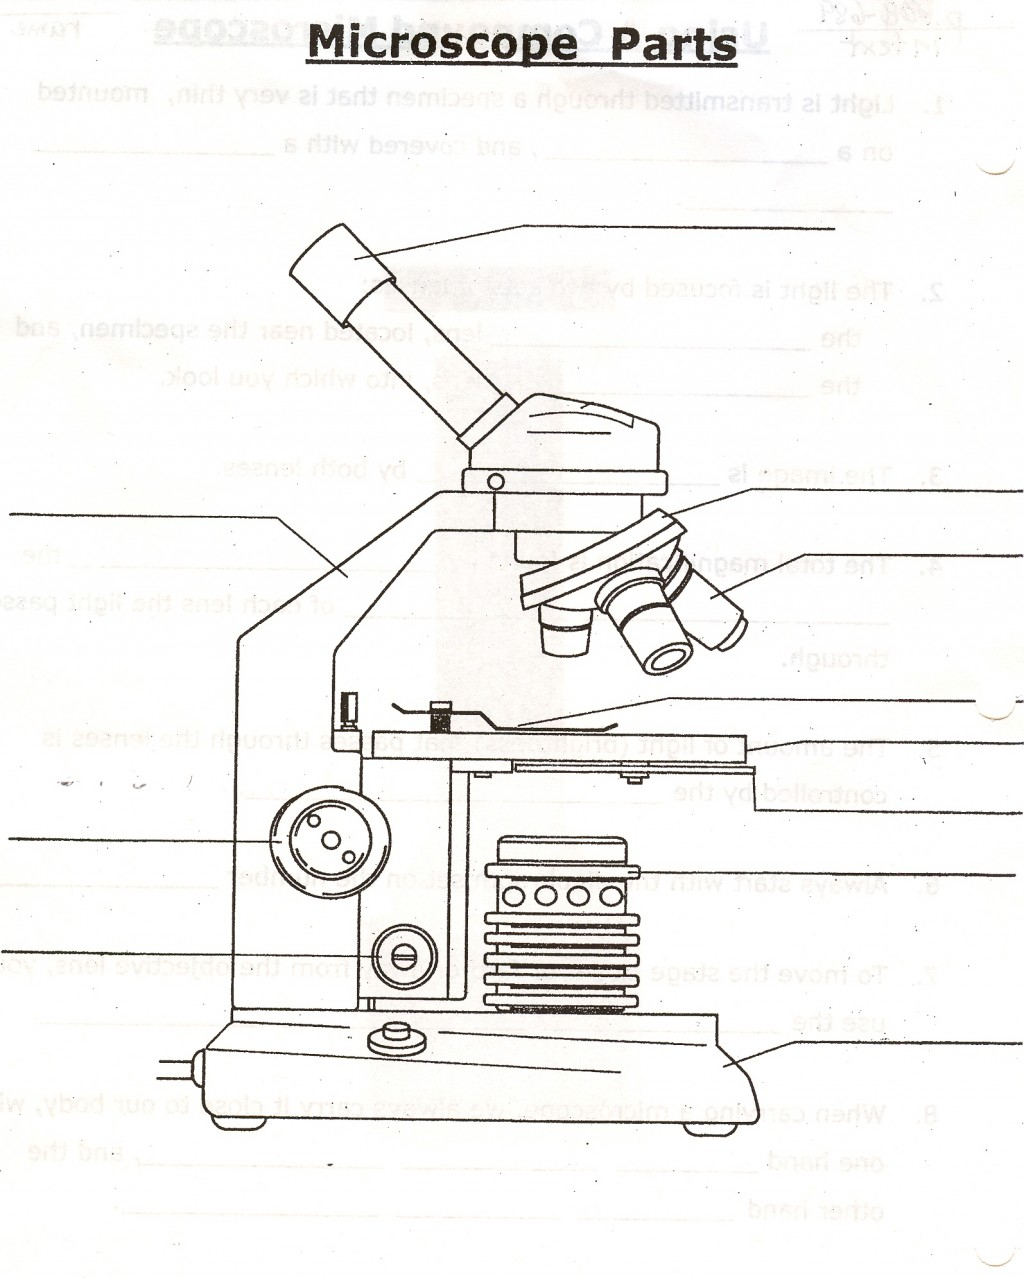 diagram of a microscope and functions its parts hunter pro c sprinkler system wiring the quizlet 5